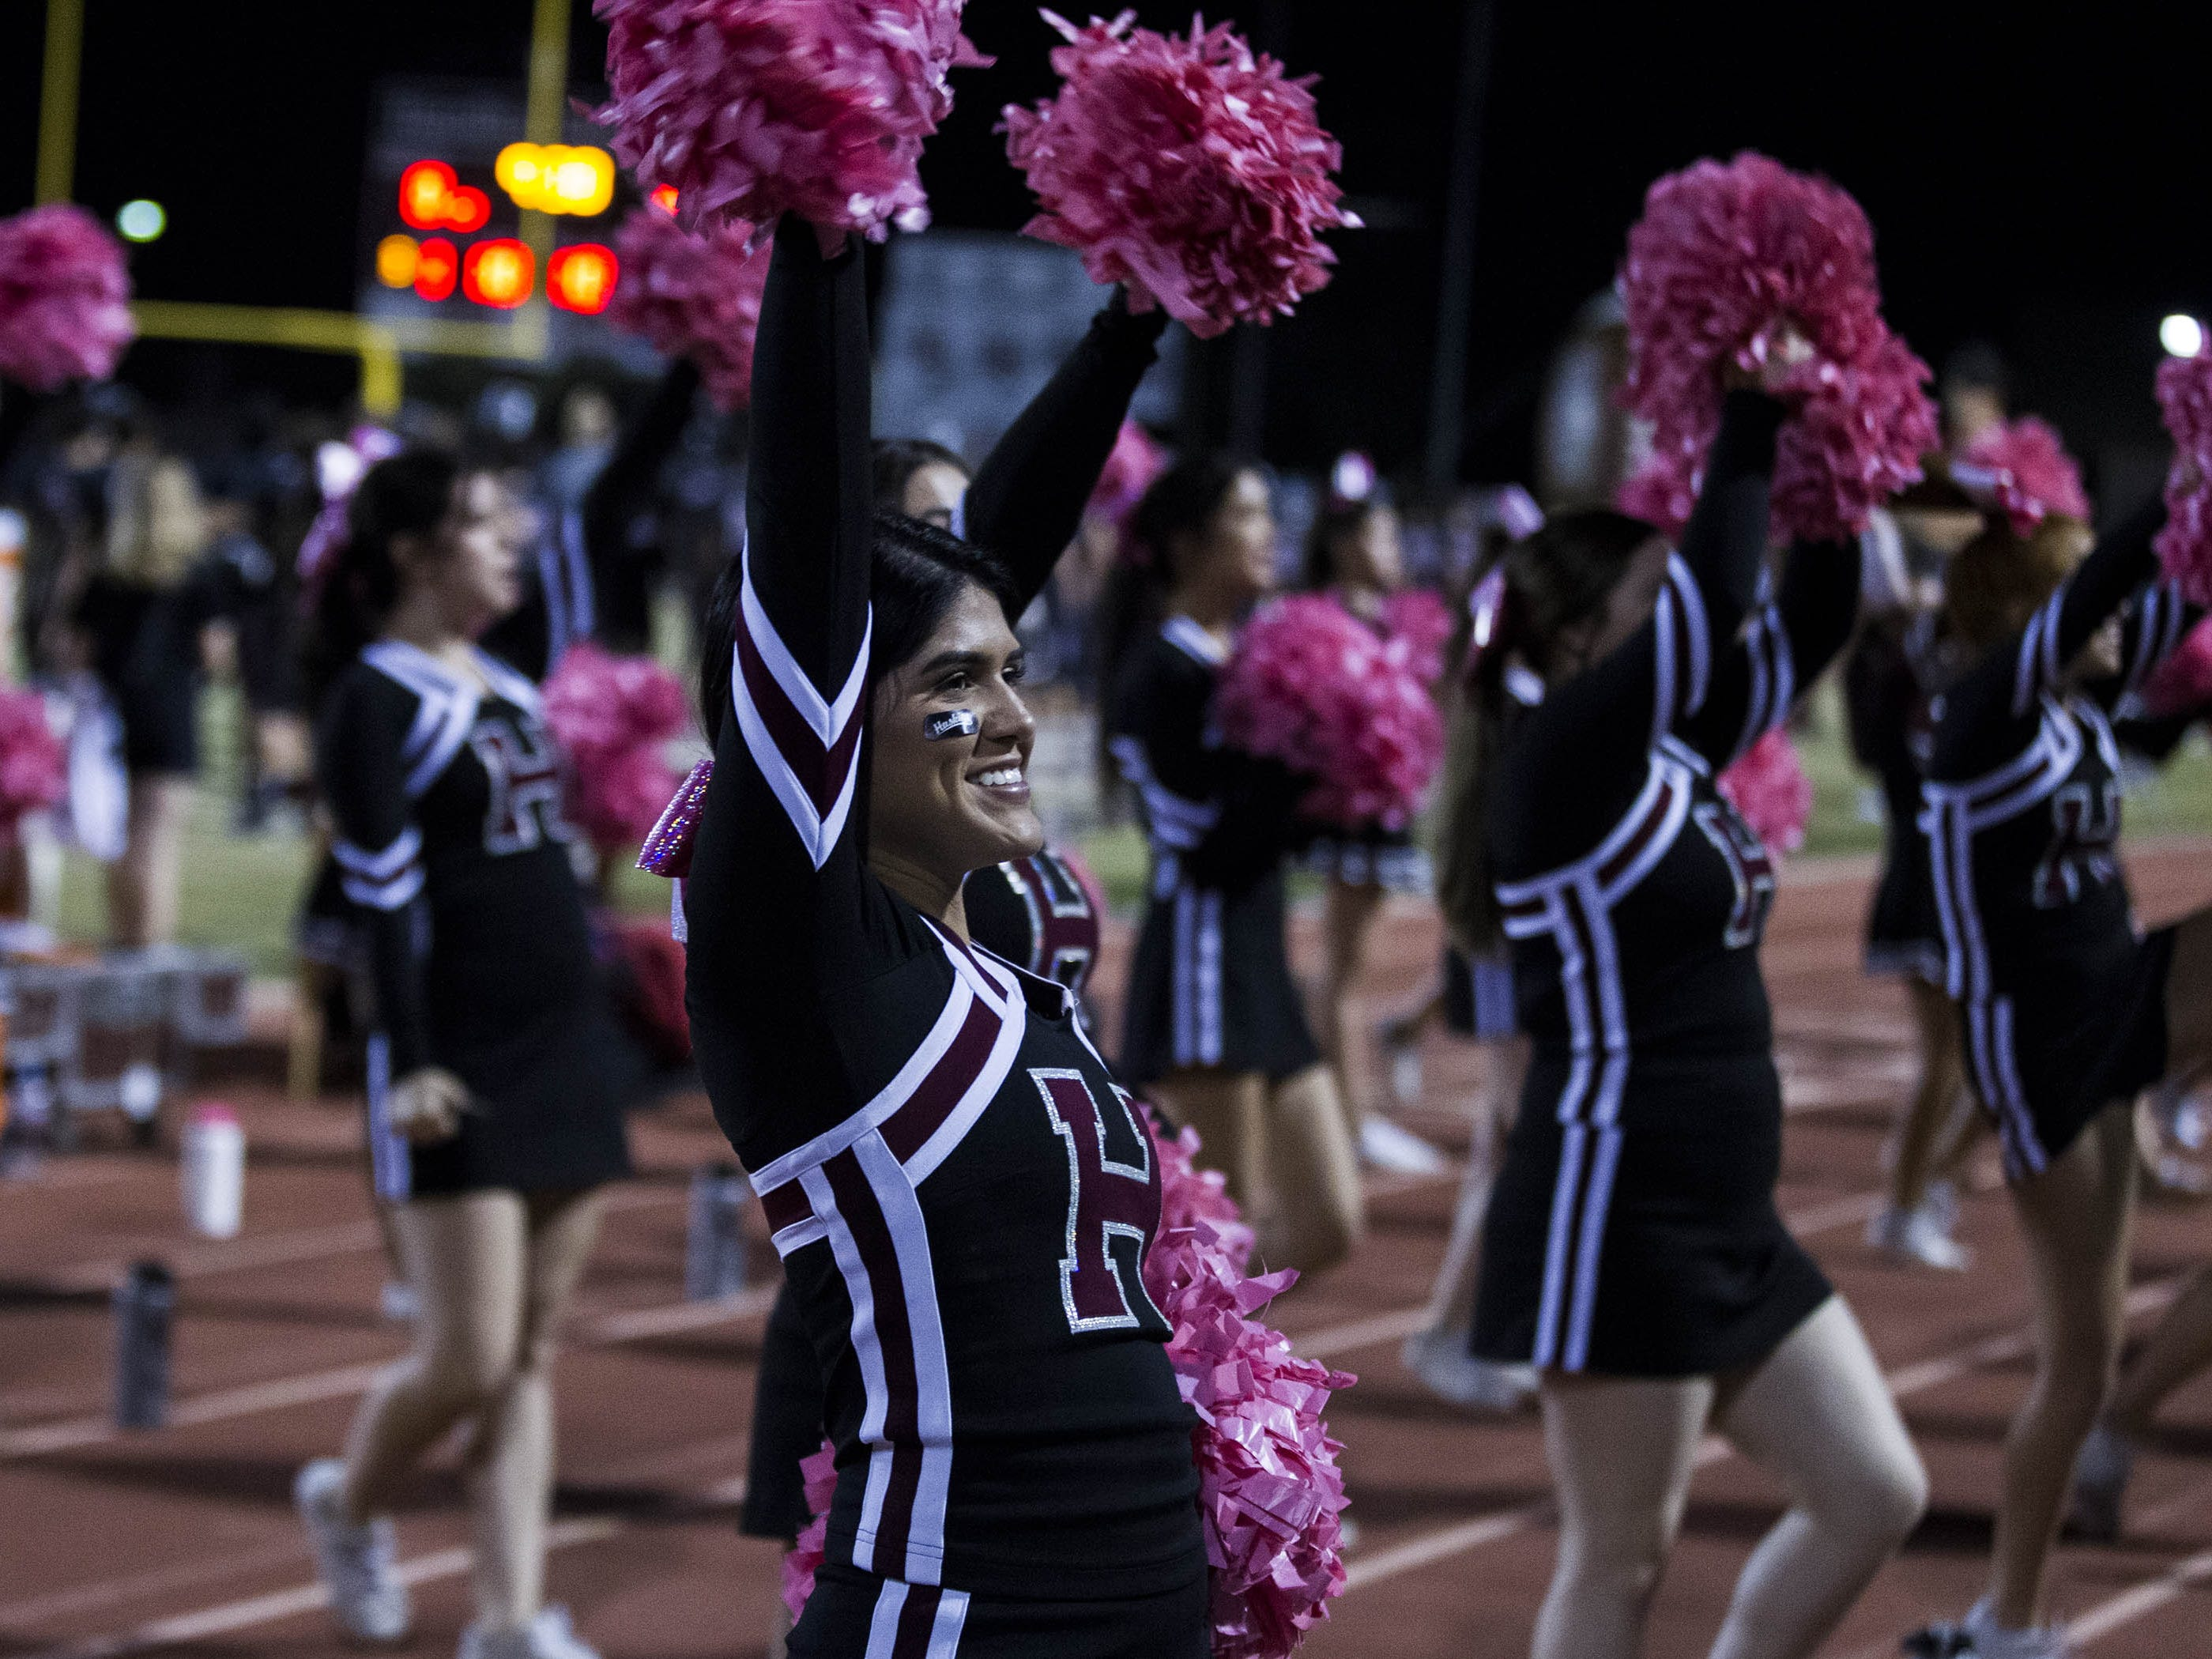 Hamilton High School cheerleaders do their thing during their game against crosstown rivals the Chandler Wolves in Chandler, Friday, Oct. 26, 2018. #azhsfb